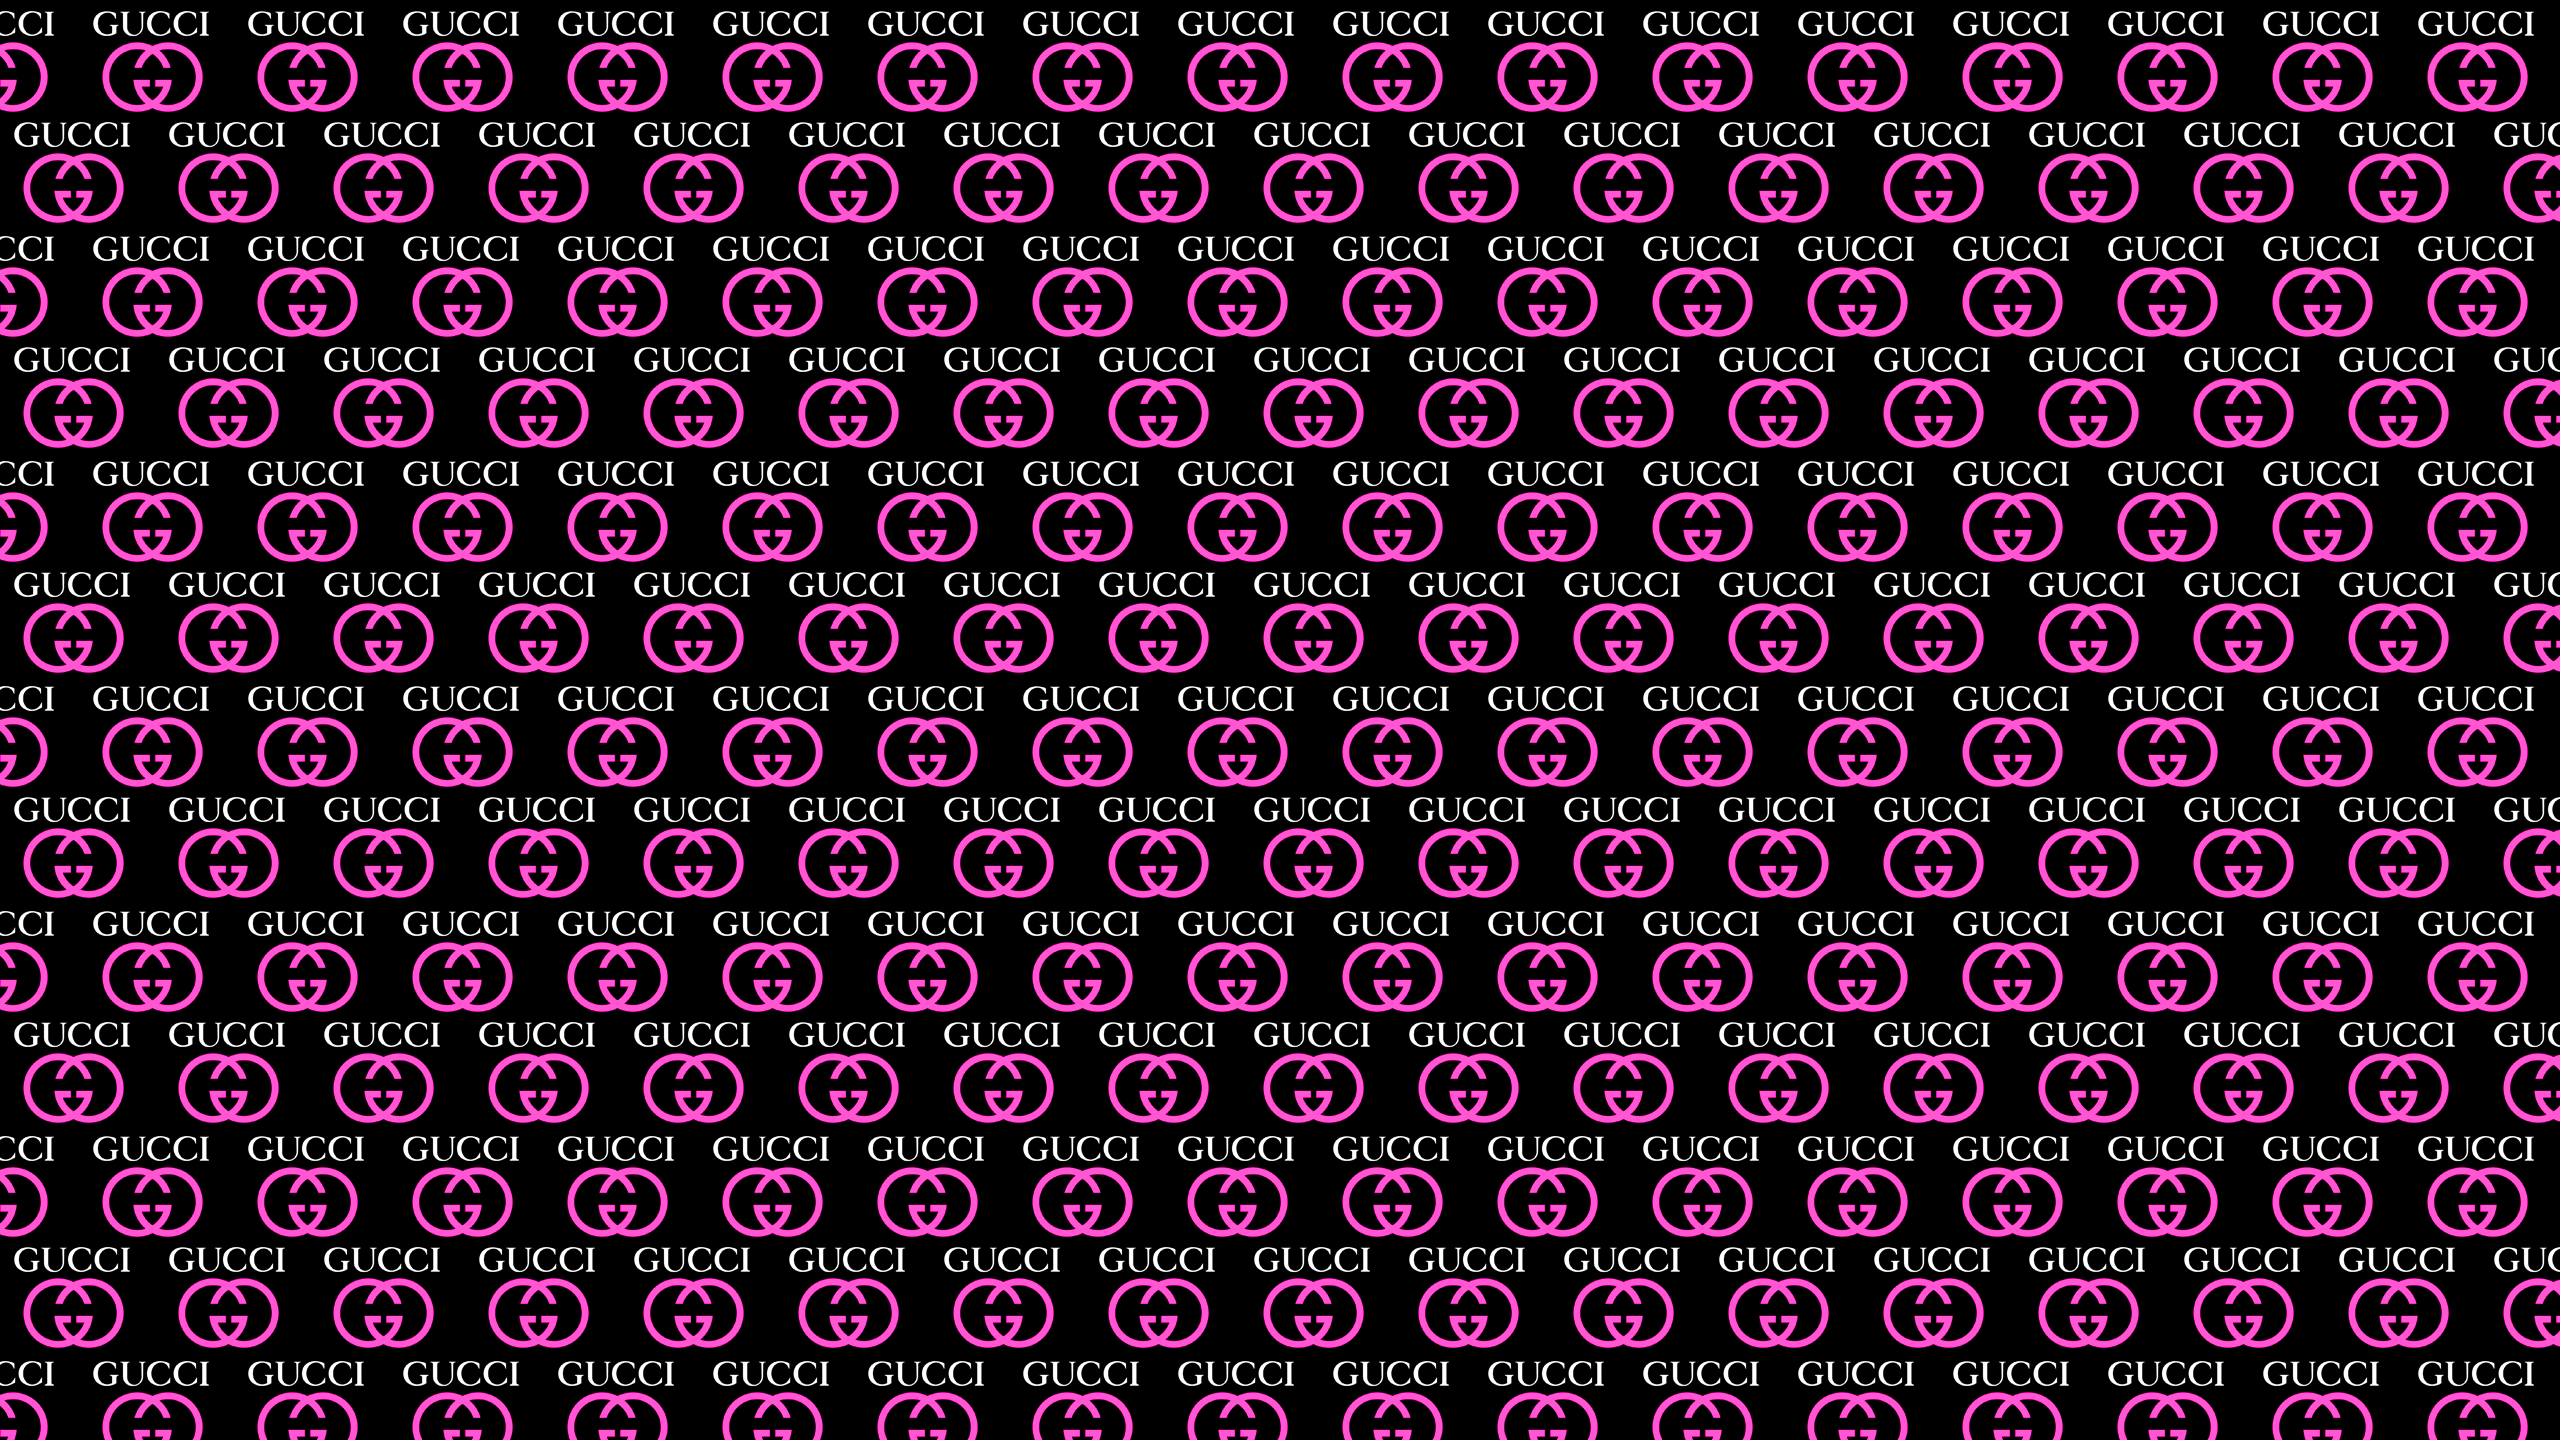 this Pink Gucci Desktop Wallpaper is easy Just save the wallpaper 2560x1440